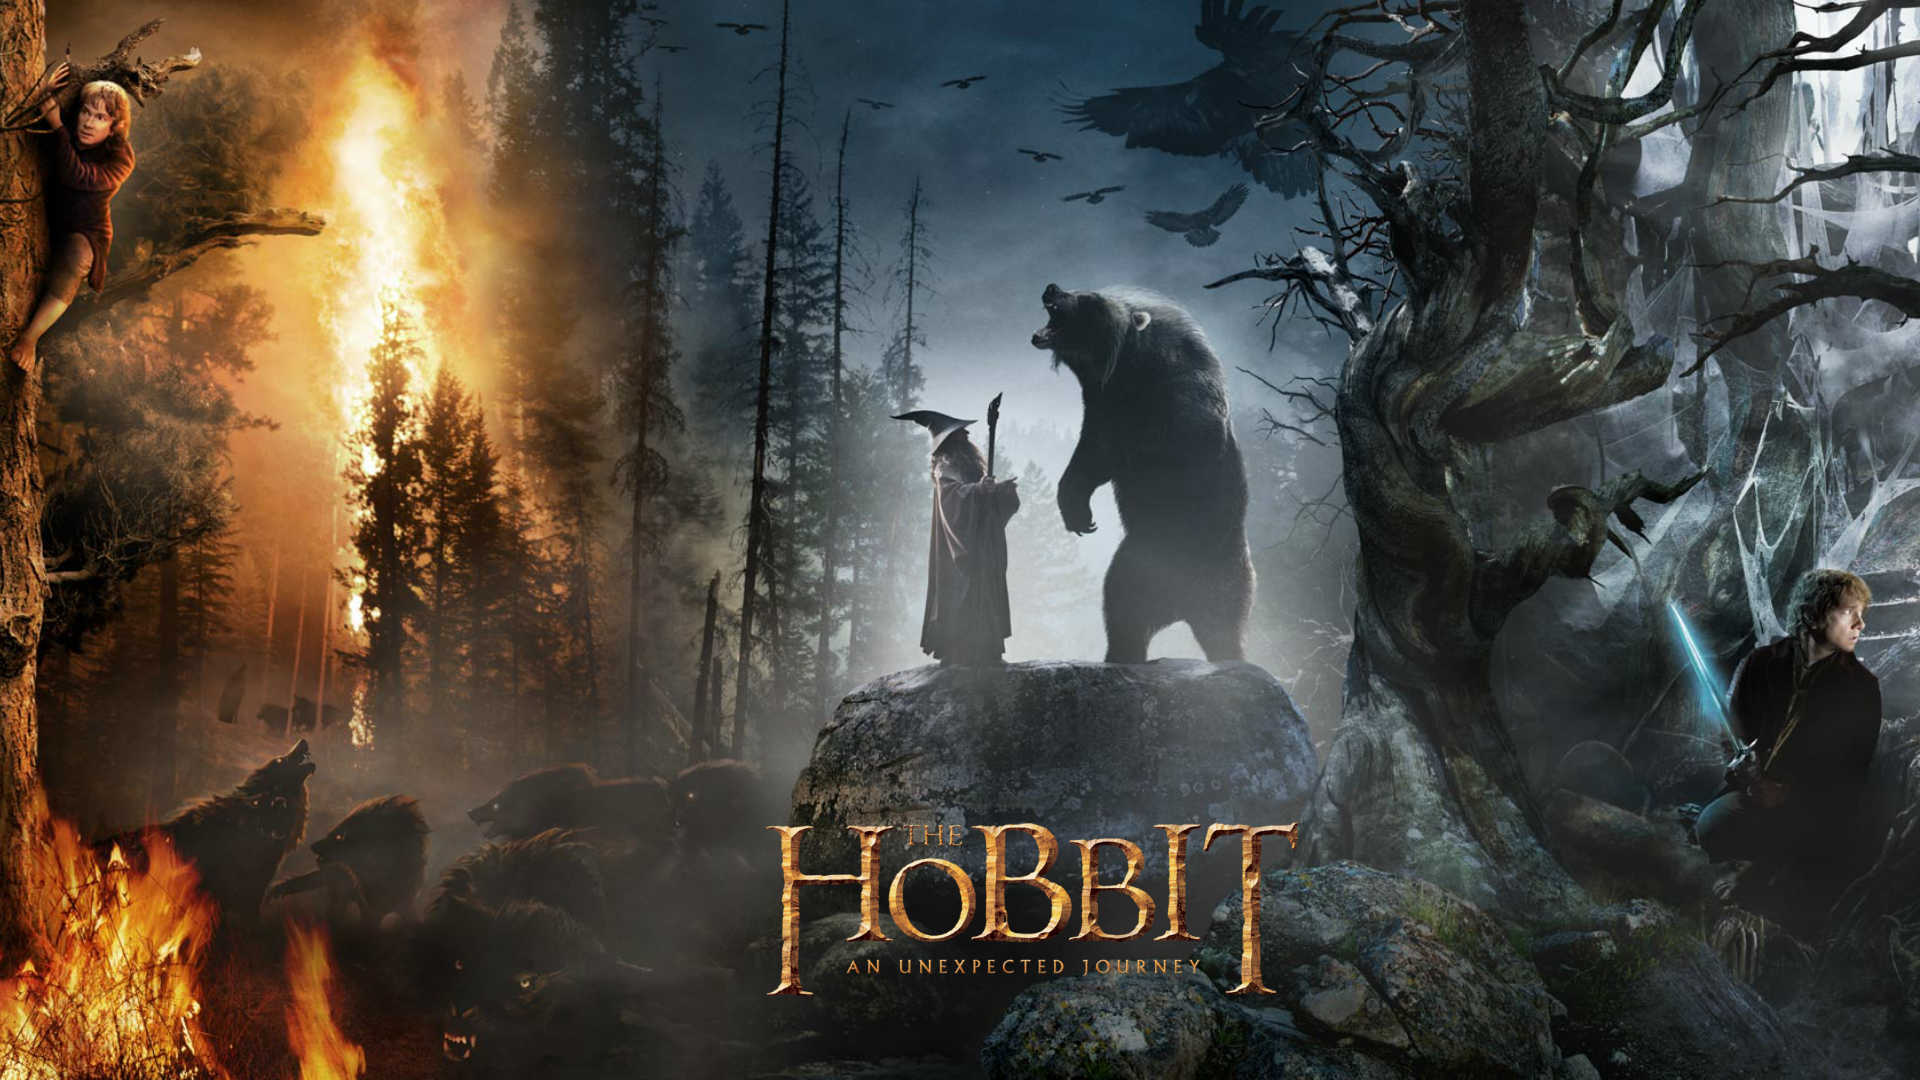 Hobbit gmail theme - Movie Themed Wallpapers Hd Wallpaper Background